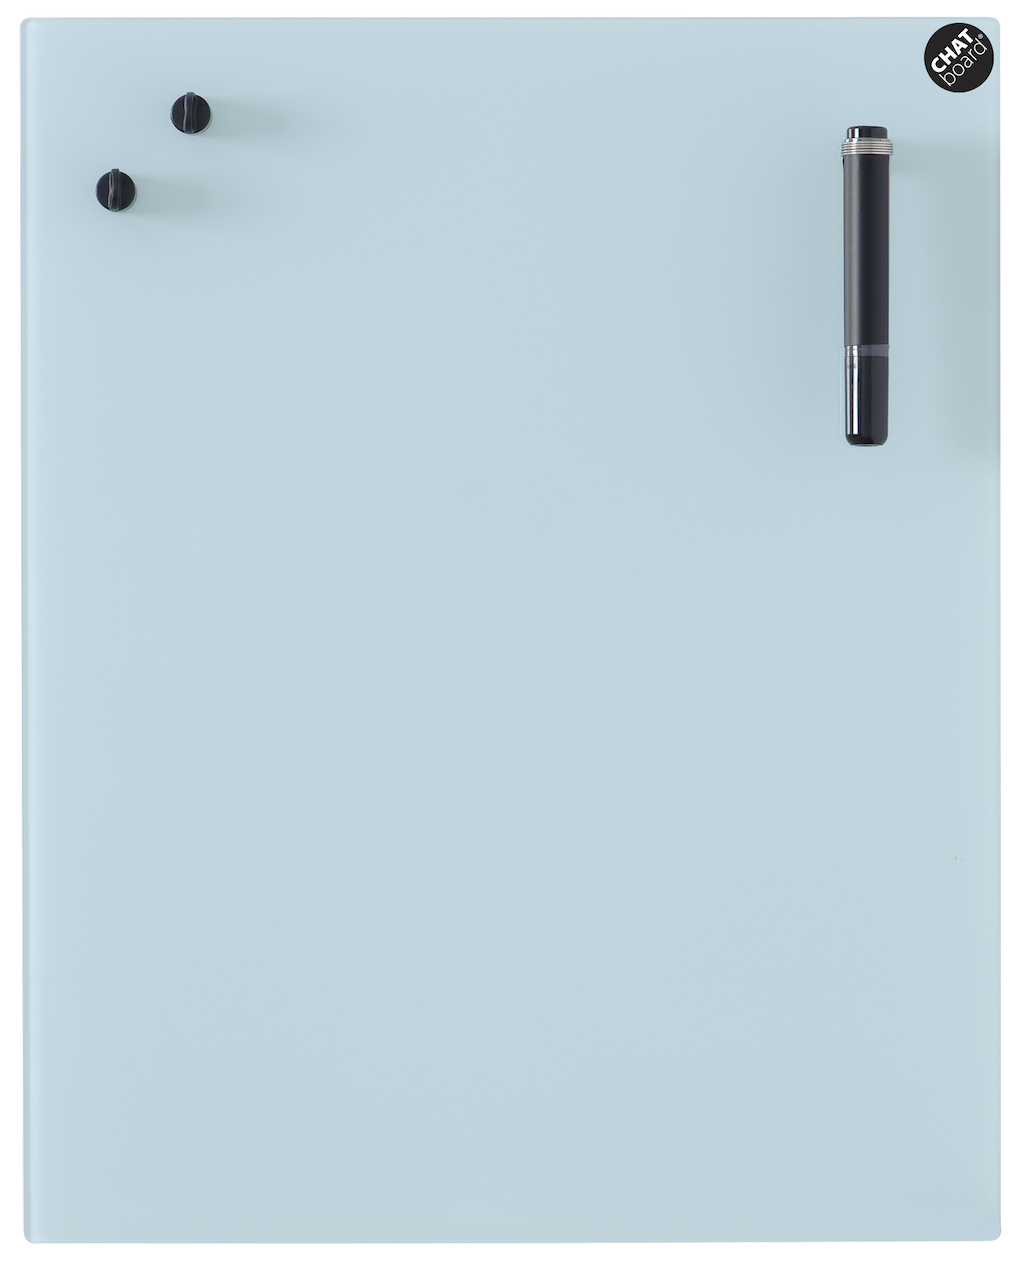 CHAT BOARD® – Light Blue